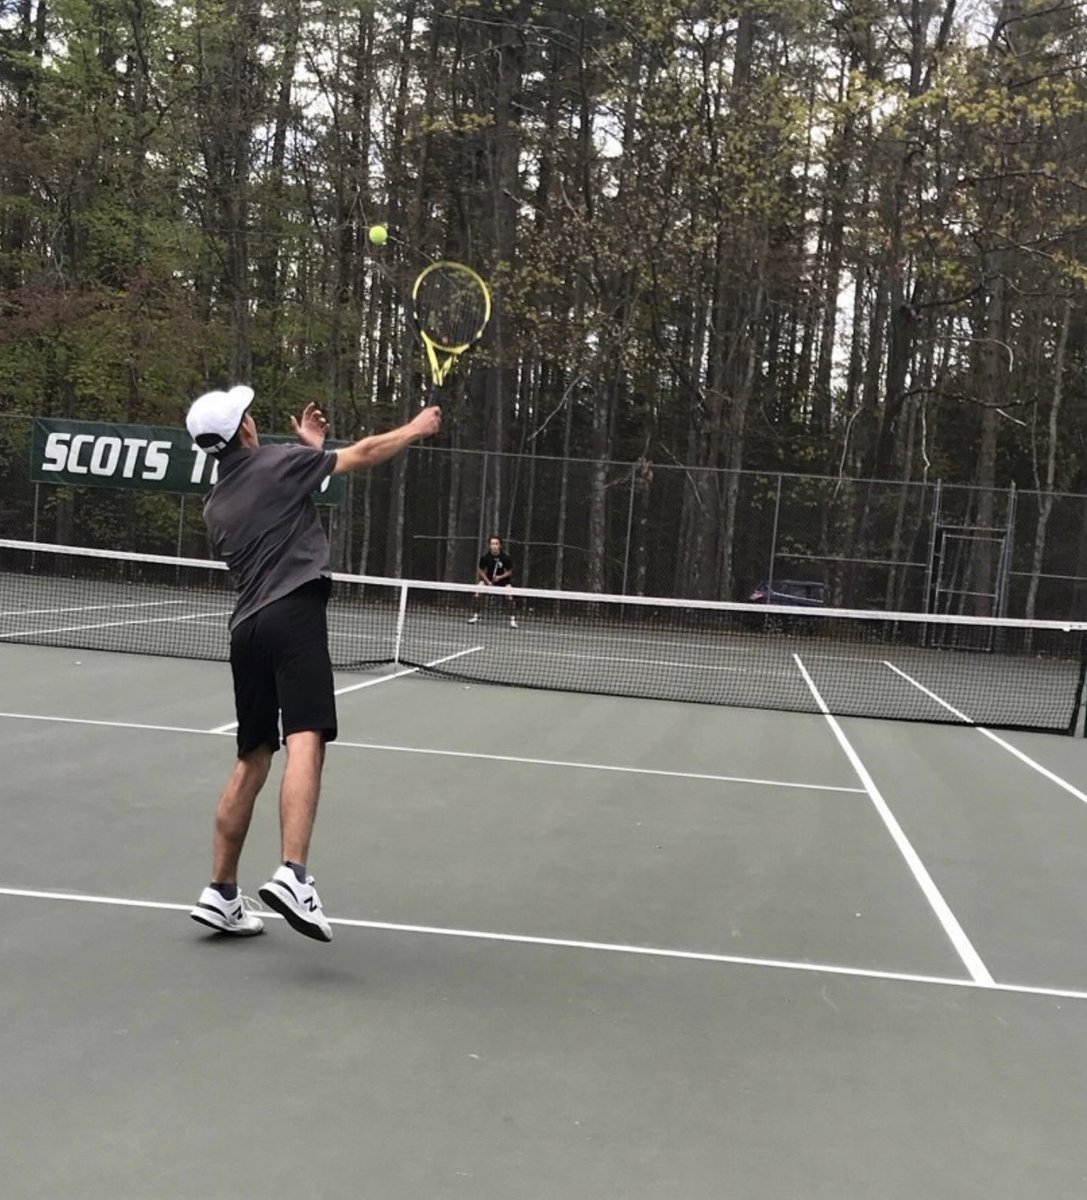 test Twitter Media - Wildcat Men's Tennis moves to 5-1 on the season today 3-0 vs Bonny Eagle. @YHSWildcats  Singles—Brody Waters (Y)def. Timmy Zidle, 6-0, 6-2 Nathan Pfirman (Y) def. Ken Beaumier, 6-0, 6-1 Doubles—Ben Soares /Luke Healey (Y) def. Riley Mckinley/Hayden Triance, 6-4, 6-1 https://t.co/fHqRhbBBTU